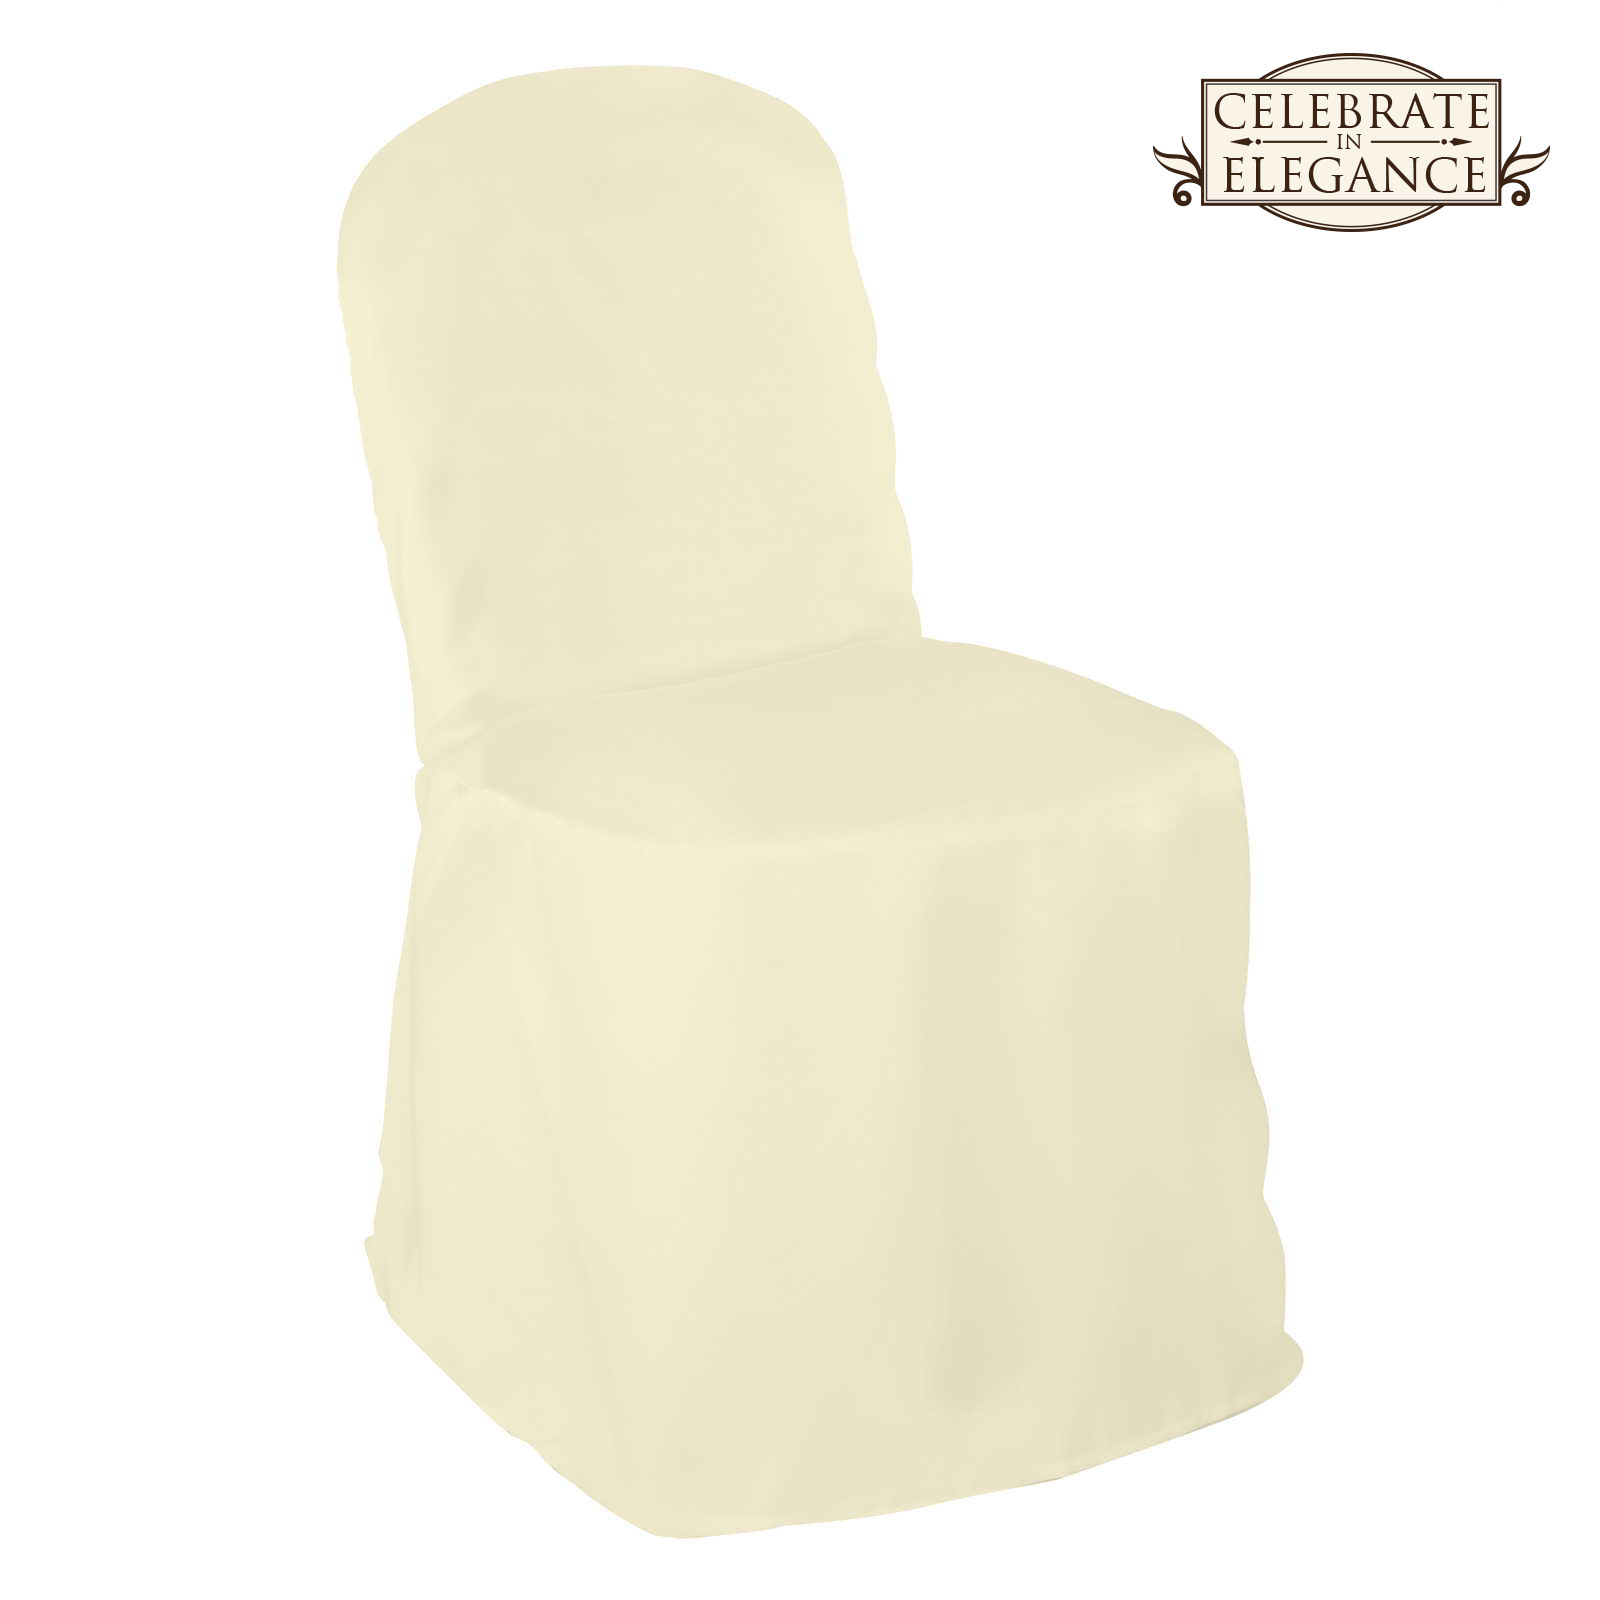 spandex folding chair covers amazon victorian parlor chairs 10 polyester banquet wedding party décor ebay